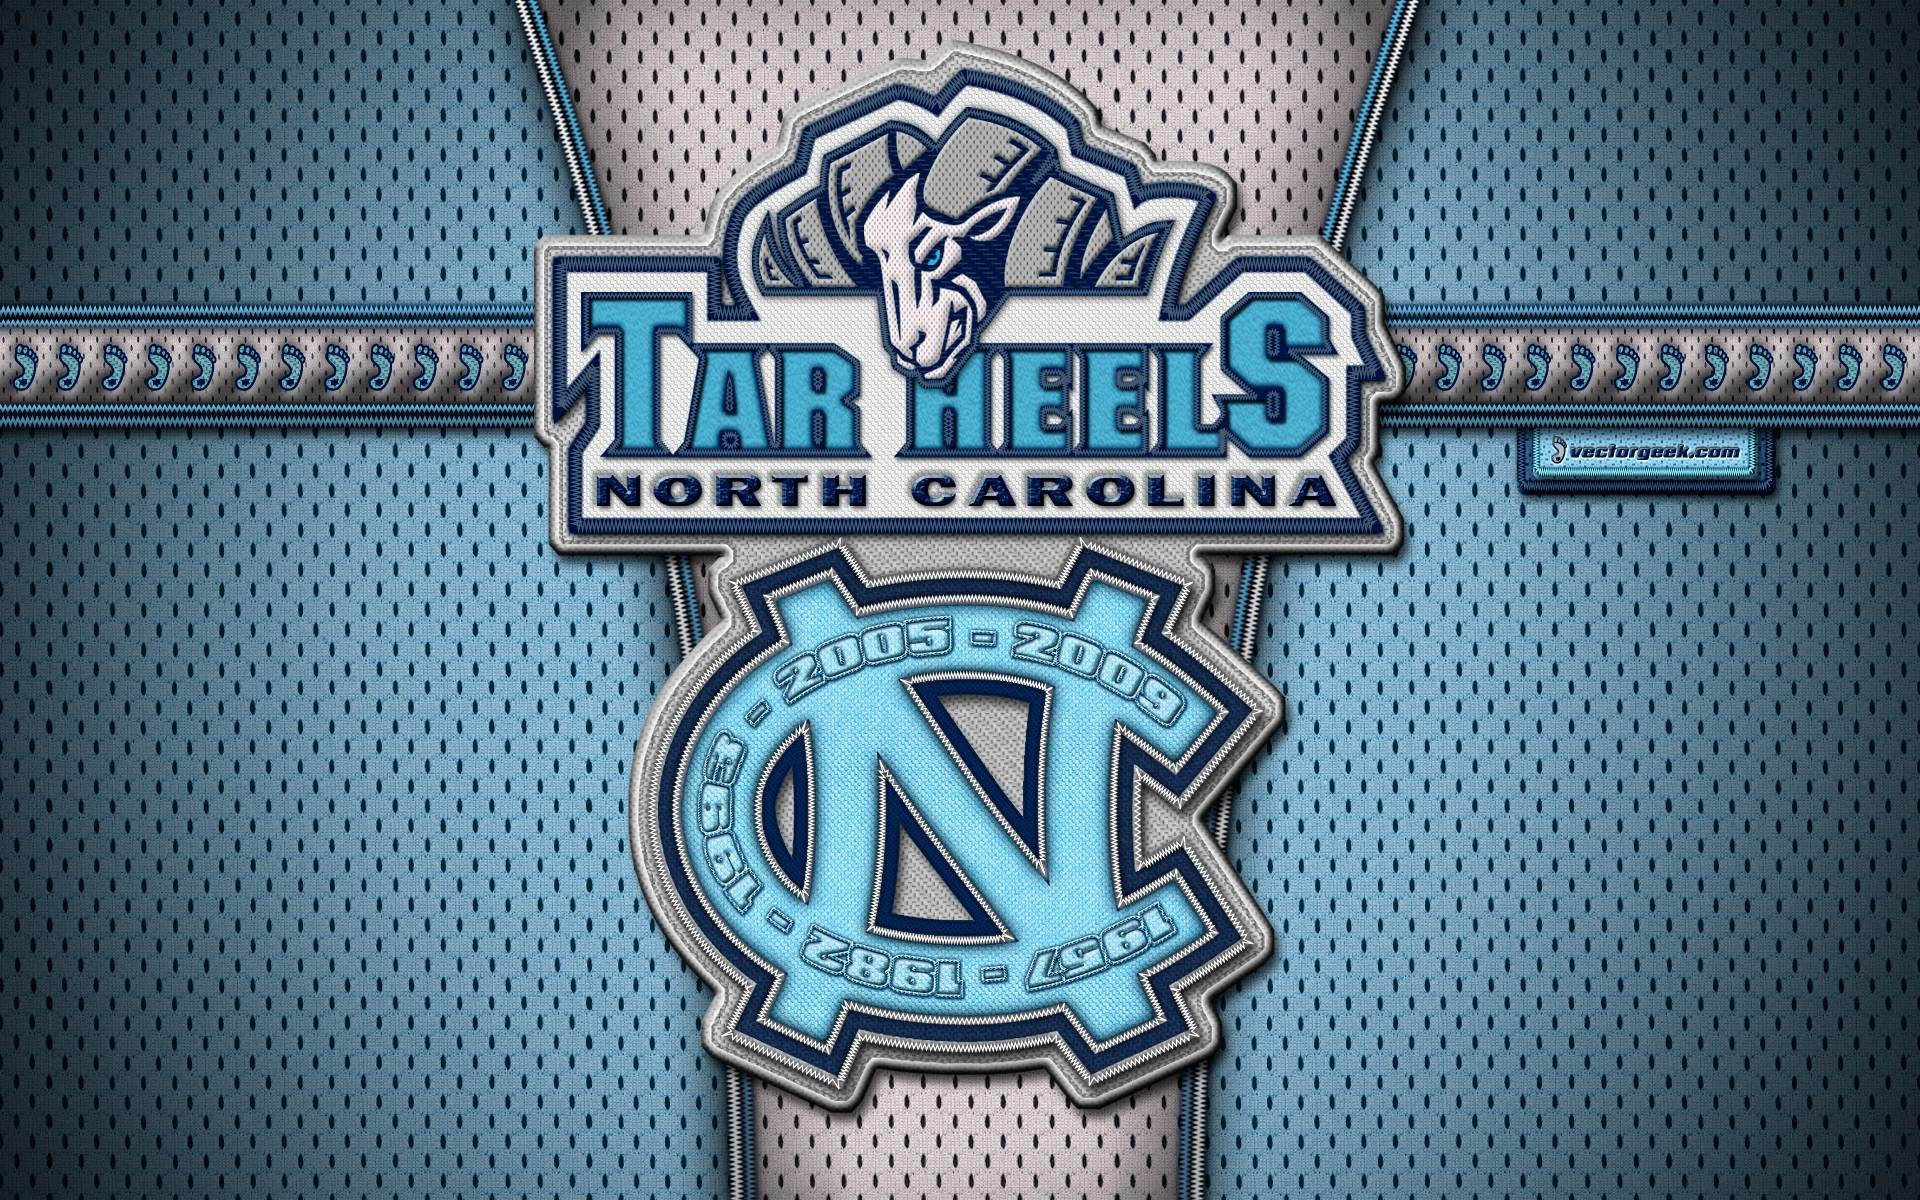 1920x1200 Images For > Unc Logo Iphone Wallpaper